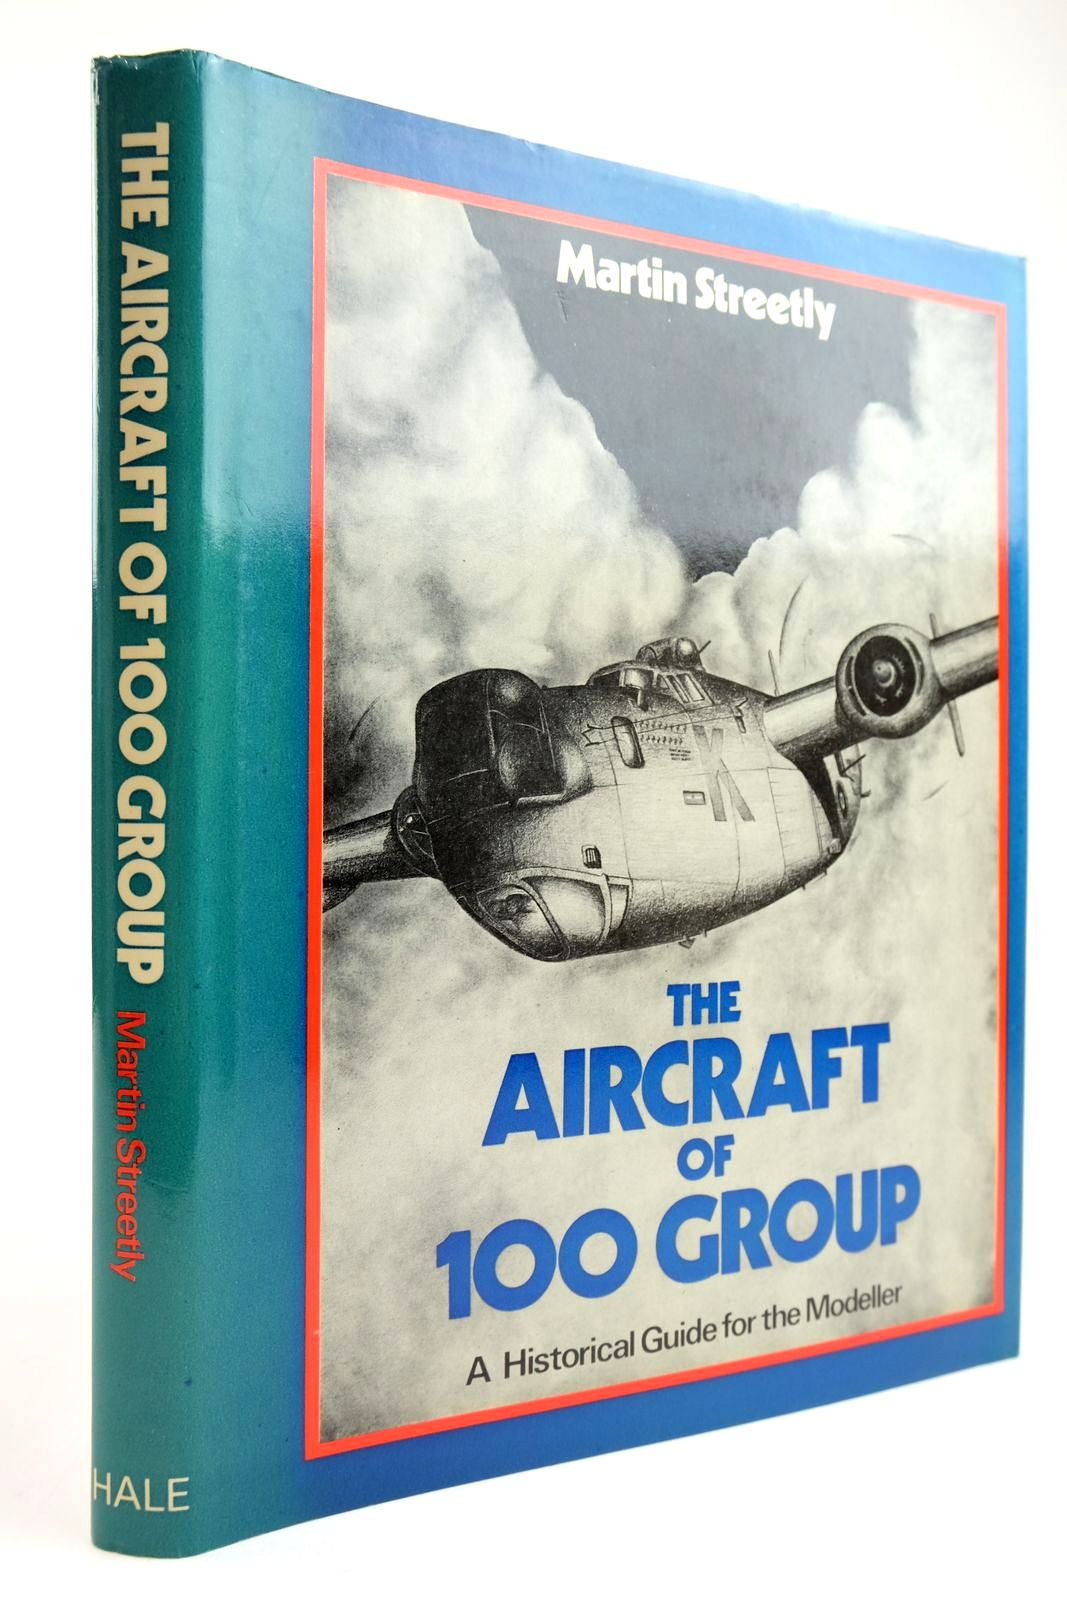 Photo of THE AIRCRAFT OF 100 GROUP A HISTORICAL GUIDE FOR THE MODELLER- Stock Number: 2133816